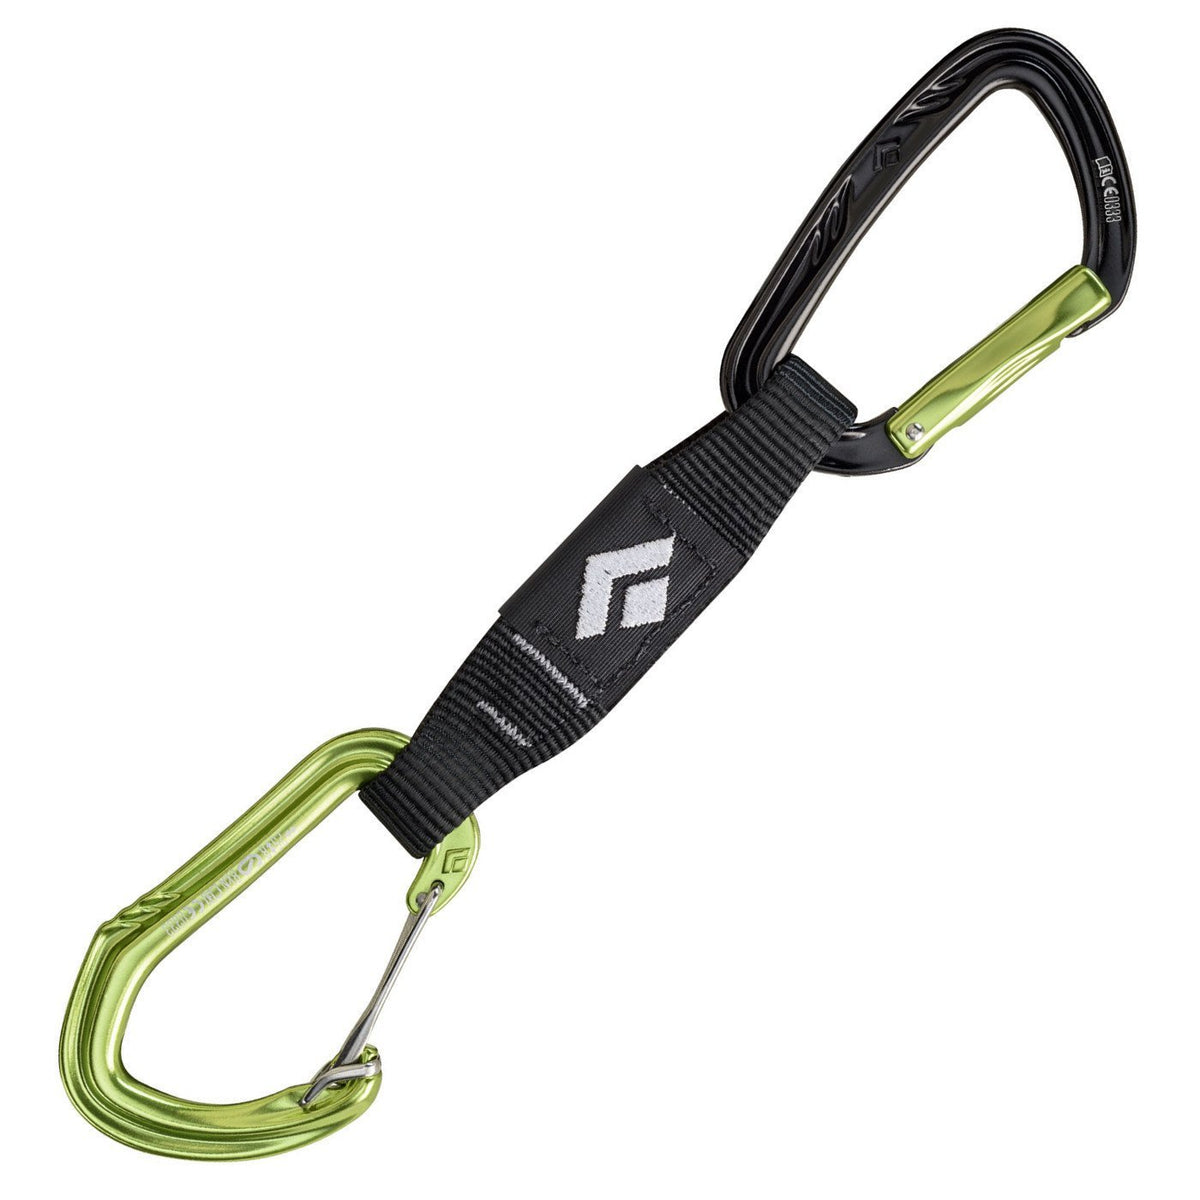 Black Diamond LiveWire Quickdraw, with black dog-bone and black/green coloured carabiners